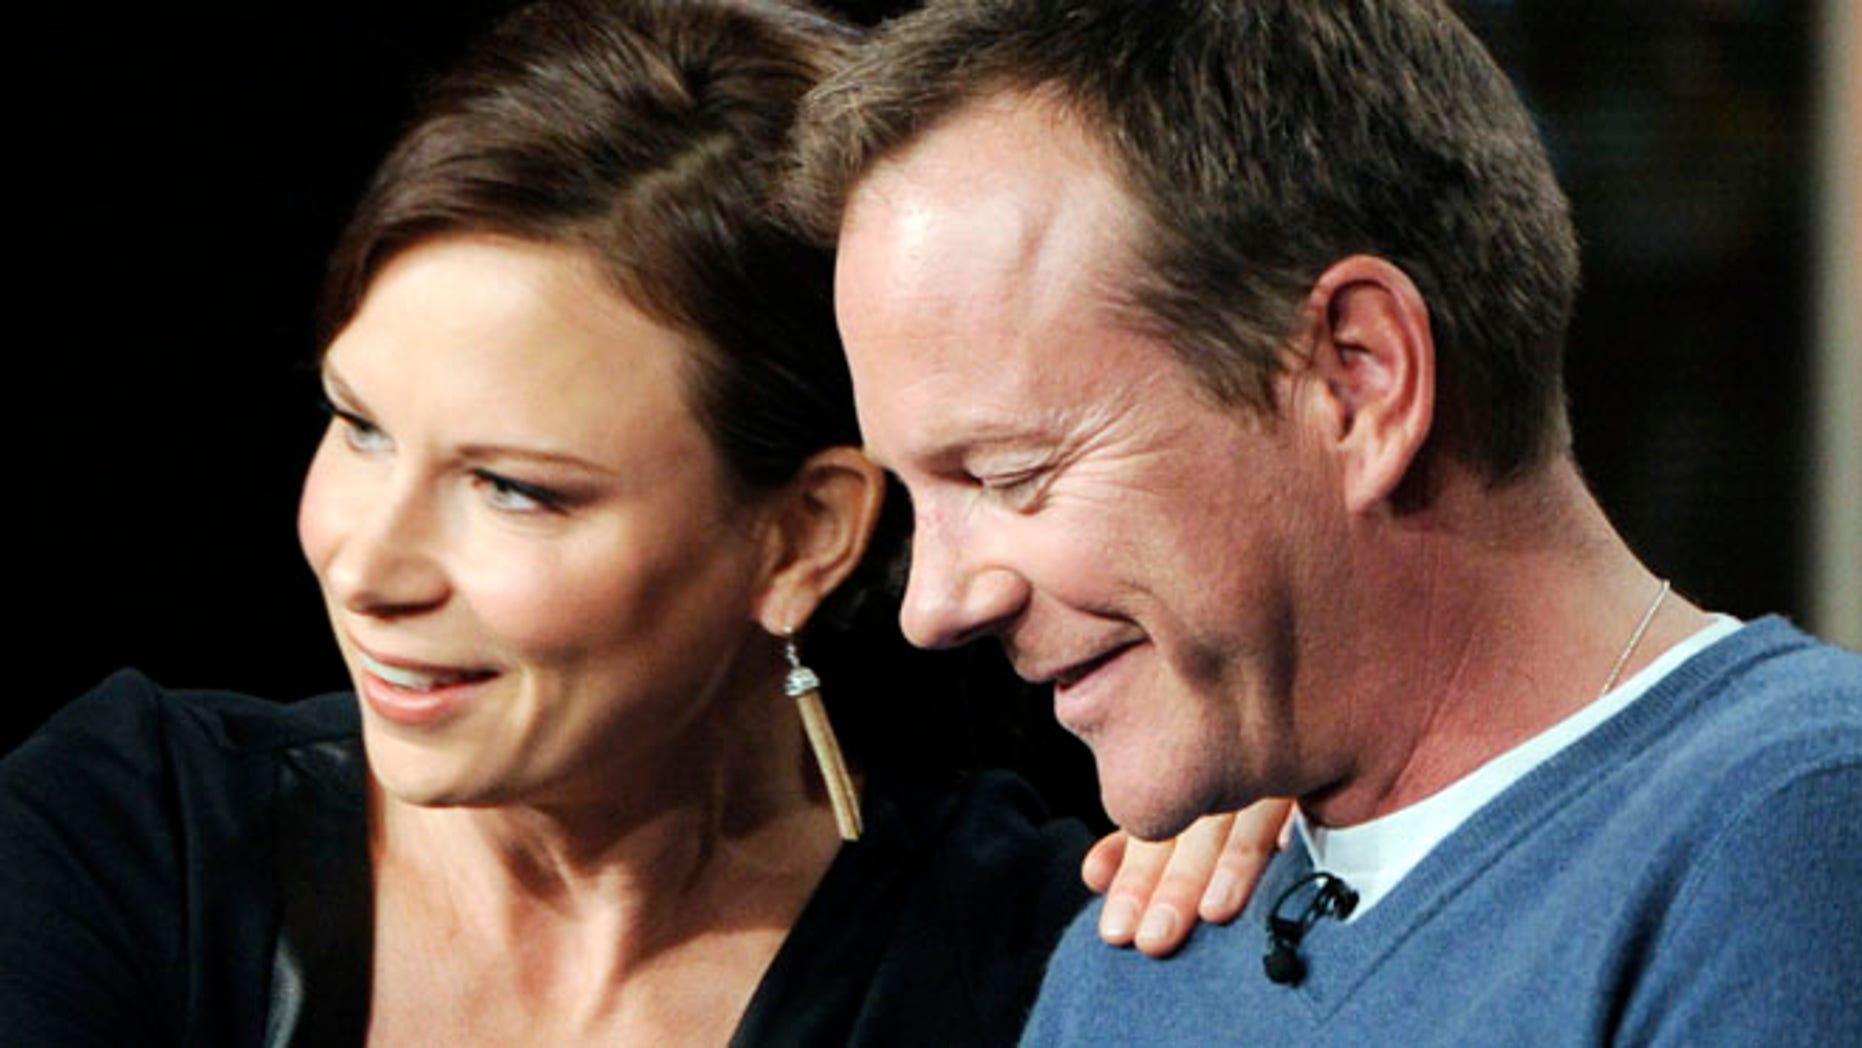 """Jan 13. 2014: Kiefer Sutherland (R), executive producer and actor, speaks on the return of """"24: Live Another Day"""" with actress Mary Lynn Rajskub during Fox Broadcasting Company's part of the Television Critics Association (TCA) Winter 2014 presentations in Pasadena, California (Reuters)"""